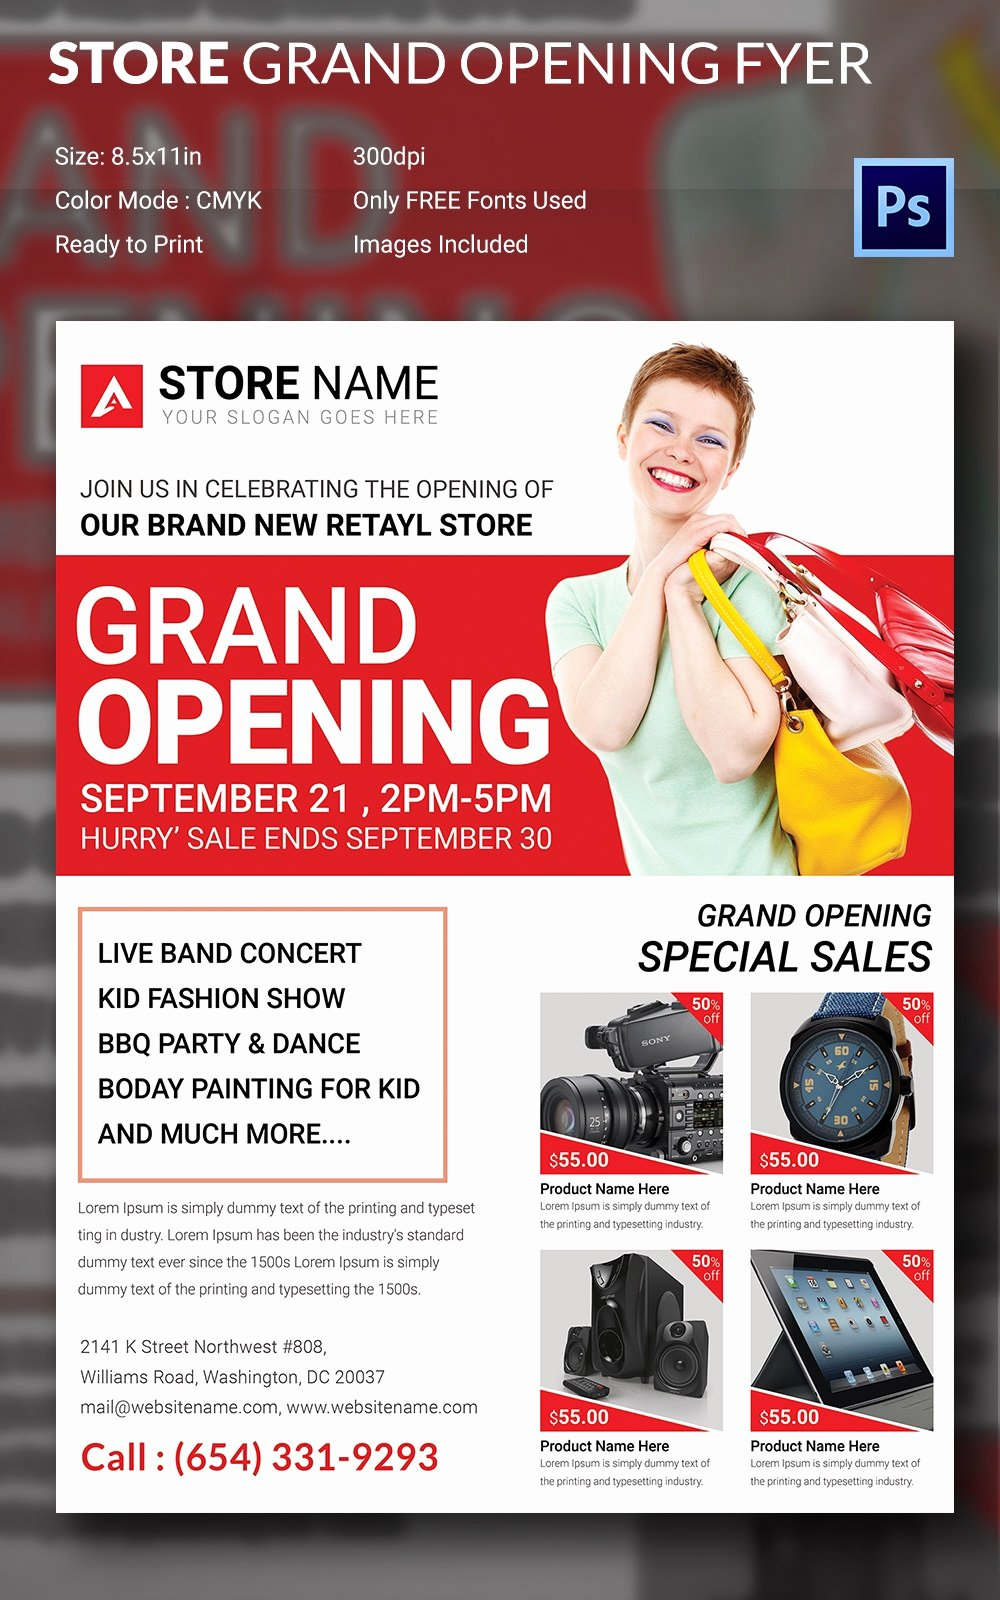 Free Grand Opening Flyer Template Inspirational Grand Opening Flyer Template 34 Free Psd Ai Vector Eps format Download